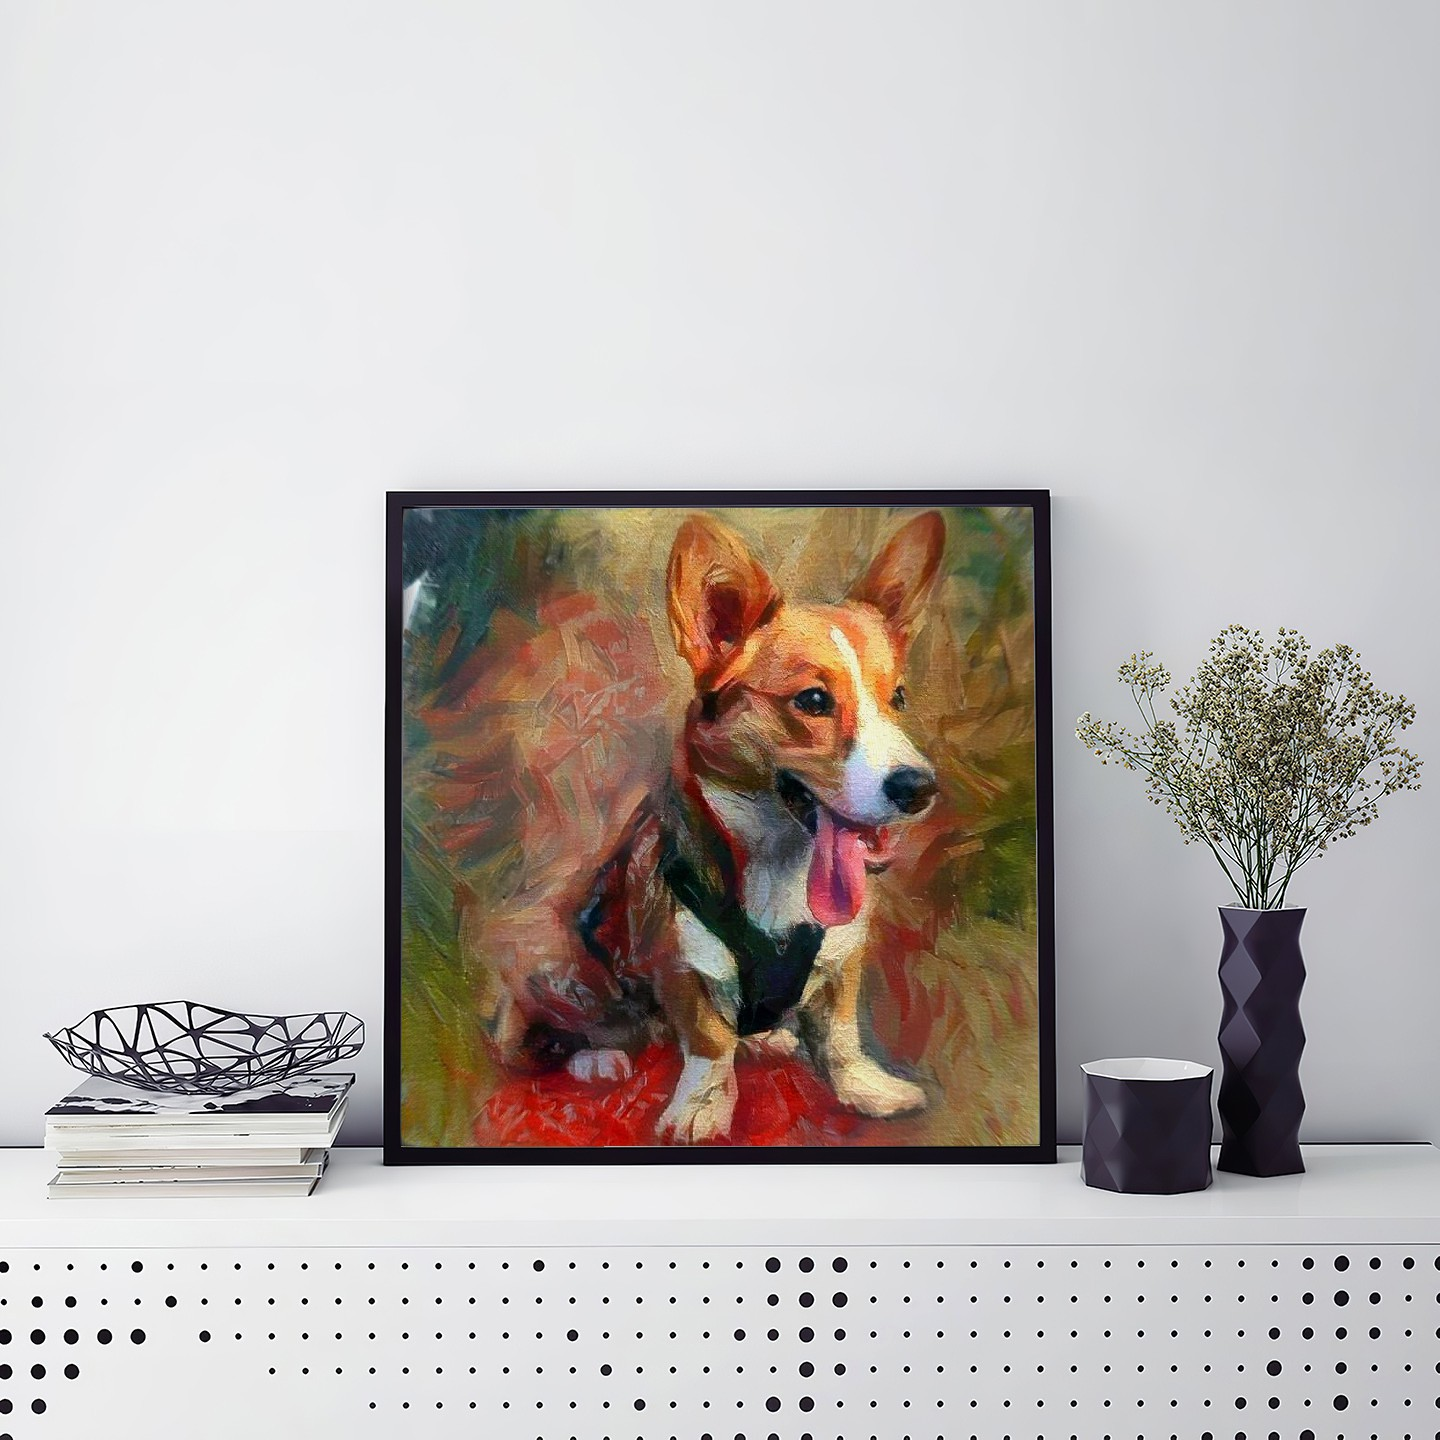 Waiting For You - Museum-quality pet portraits - canvas, poster or framed